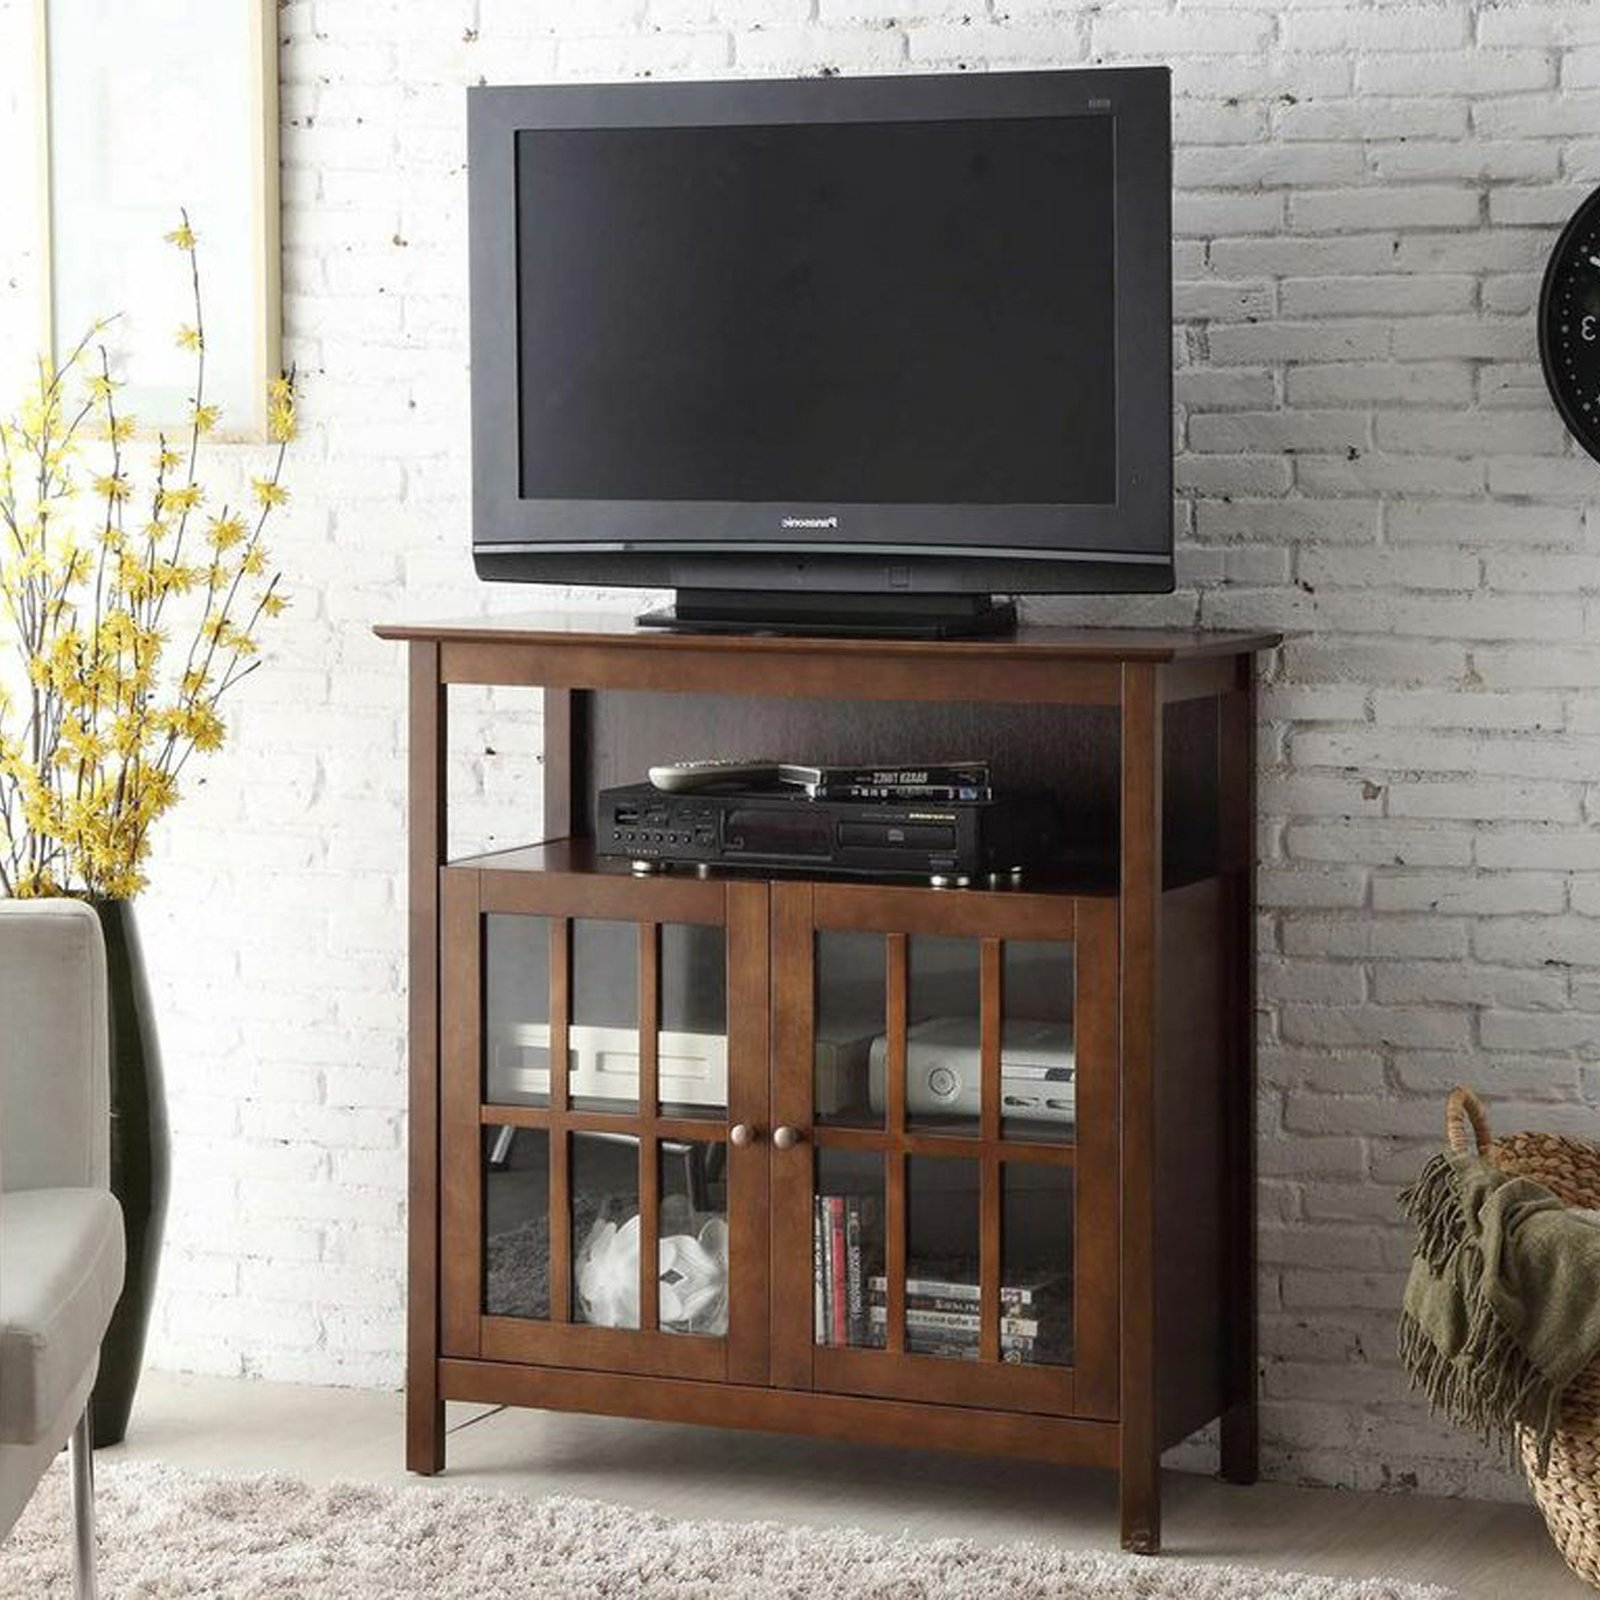 Tv Stands 38 Inches Wide For 2018 Lovely 50 Inch Tv Stand For Your Tv – Furnish Ideas (View 4 of 20)